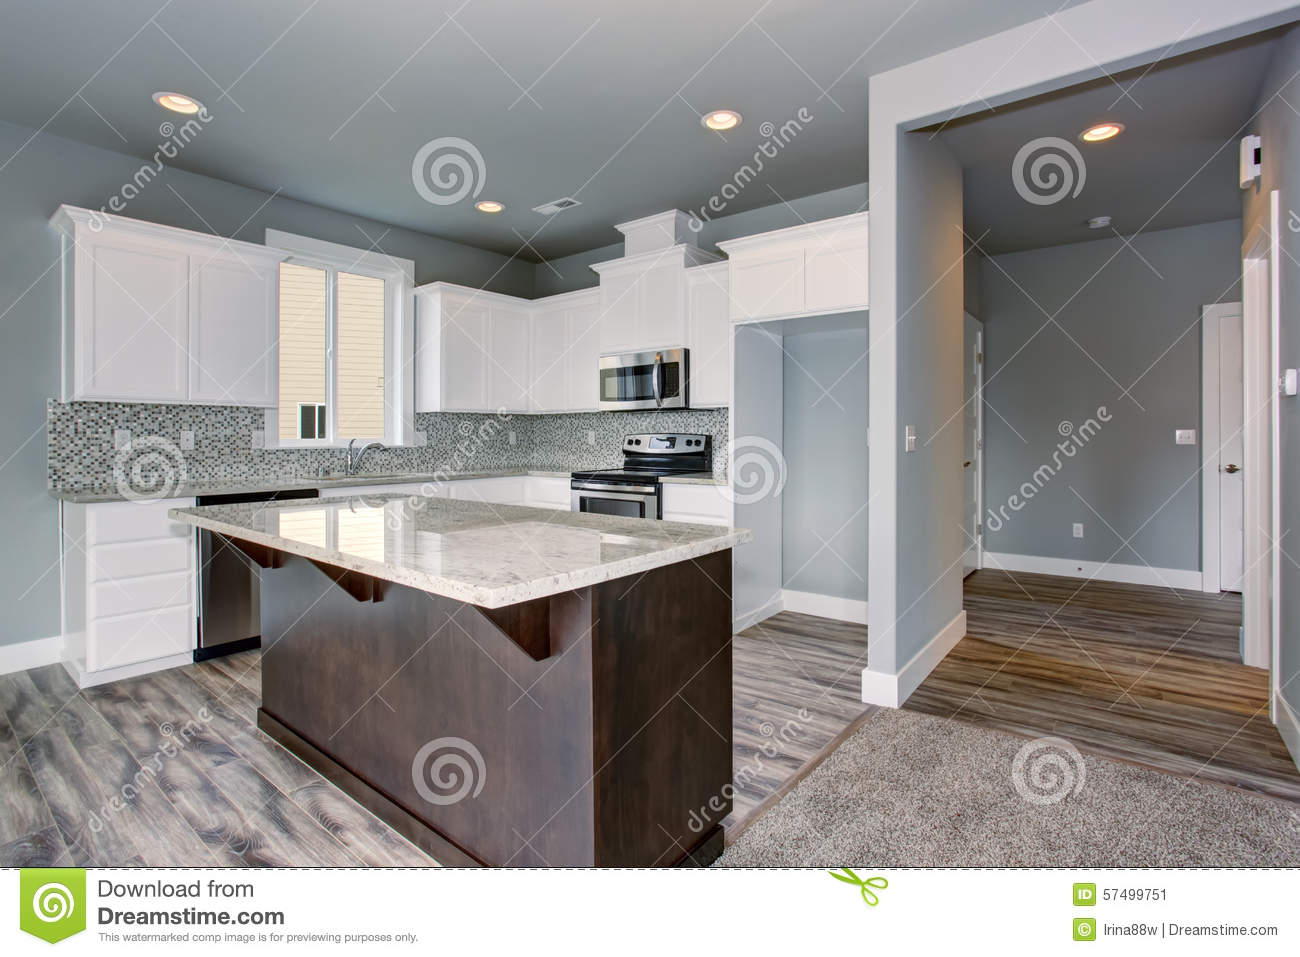 Unique Kitchen Floors Unique Kitchen With Gray Hardwood Floor Stock Photo Image 57499751